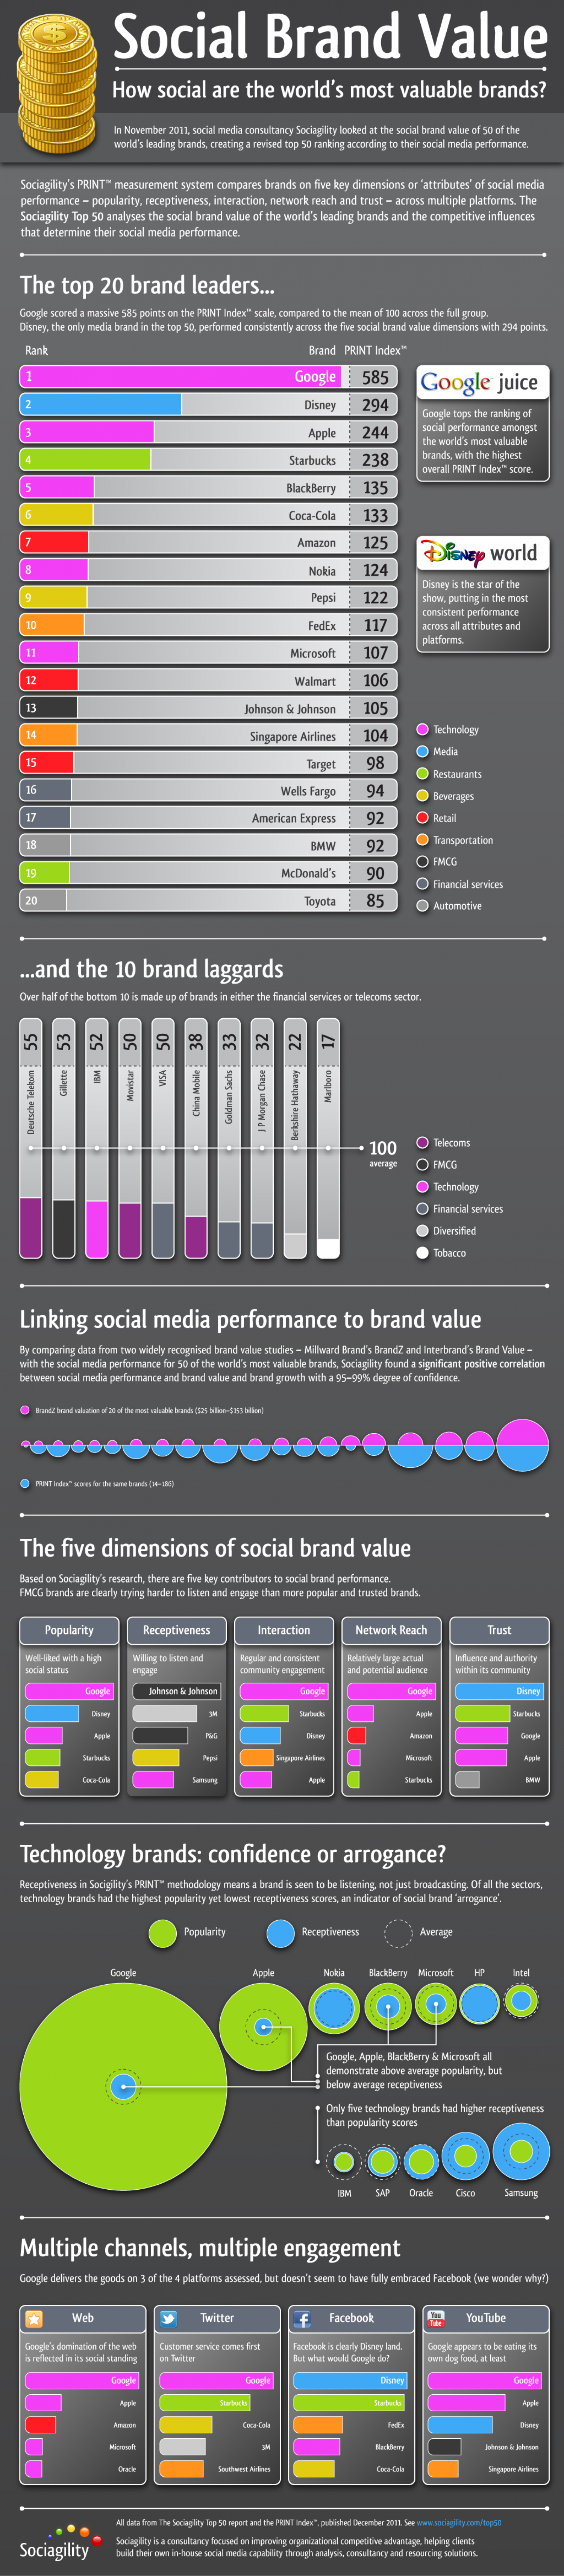 The Social Brand Value of the World's Leading Brands Infographic